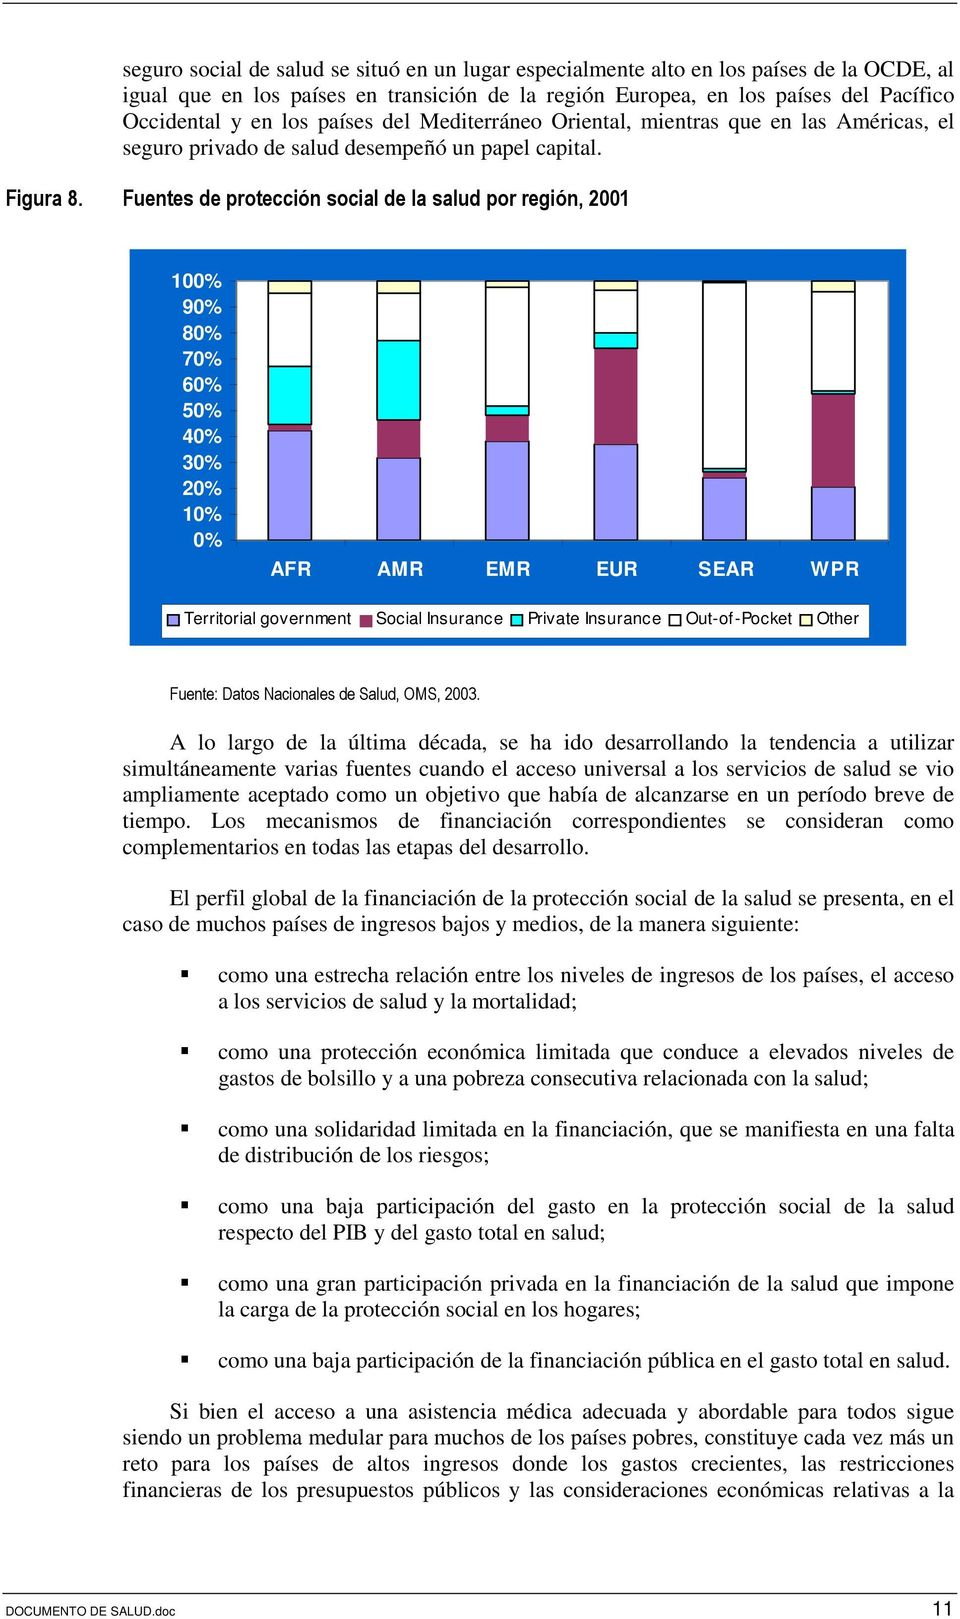 Fuentes de protección social de la salud por región, 2001 100% 90% 80% 70% 60% 50% 40% 30% 20% 10% 0% AFR AMR EMR EUR SEAR WPR Territorial government Social Insurance Private Insurance Out-of-Pocket